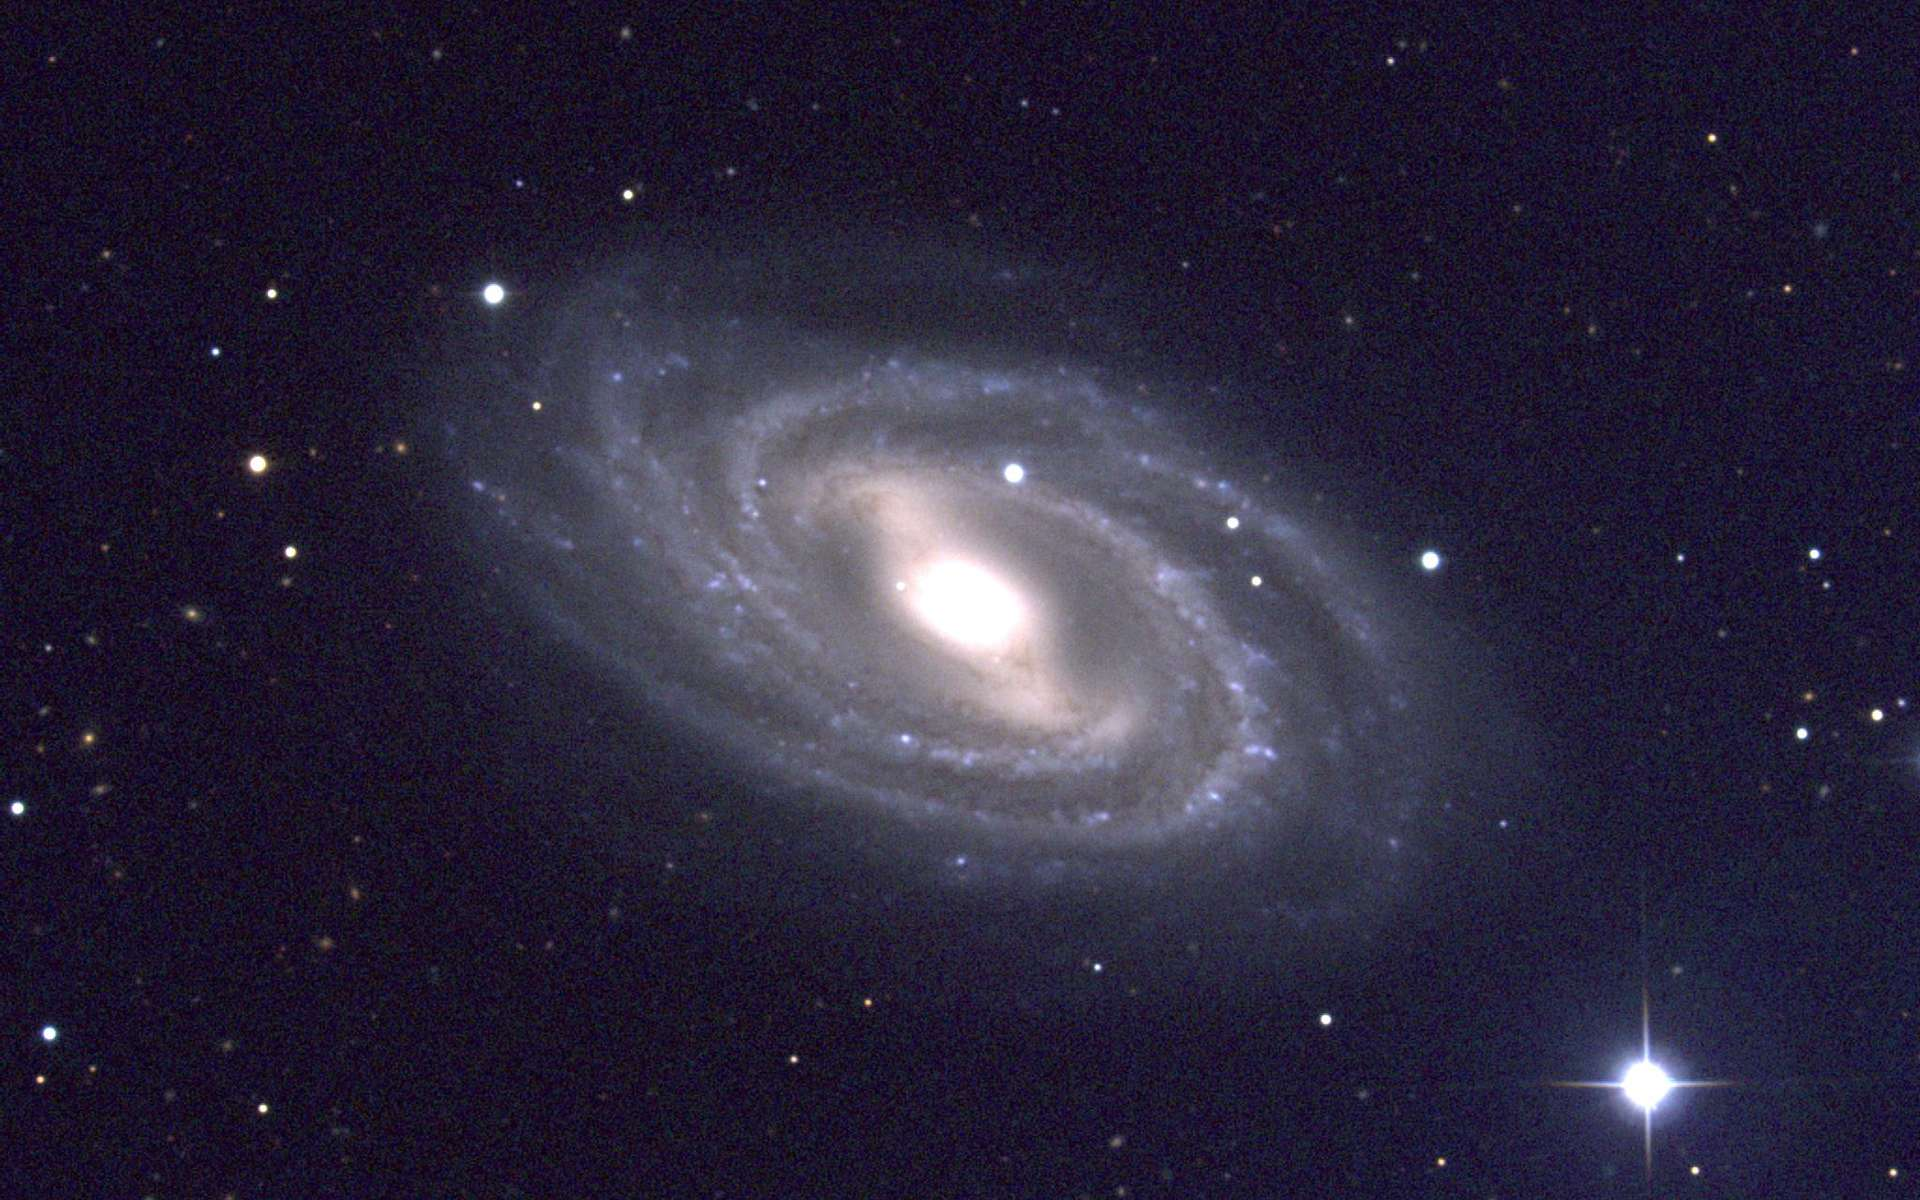 Une galaxie spirale barrée, M 109. Crédit : National Optical Astronomy Observatory/Association of Universities for Research in Astronomy/National Science Foundation